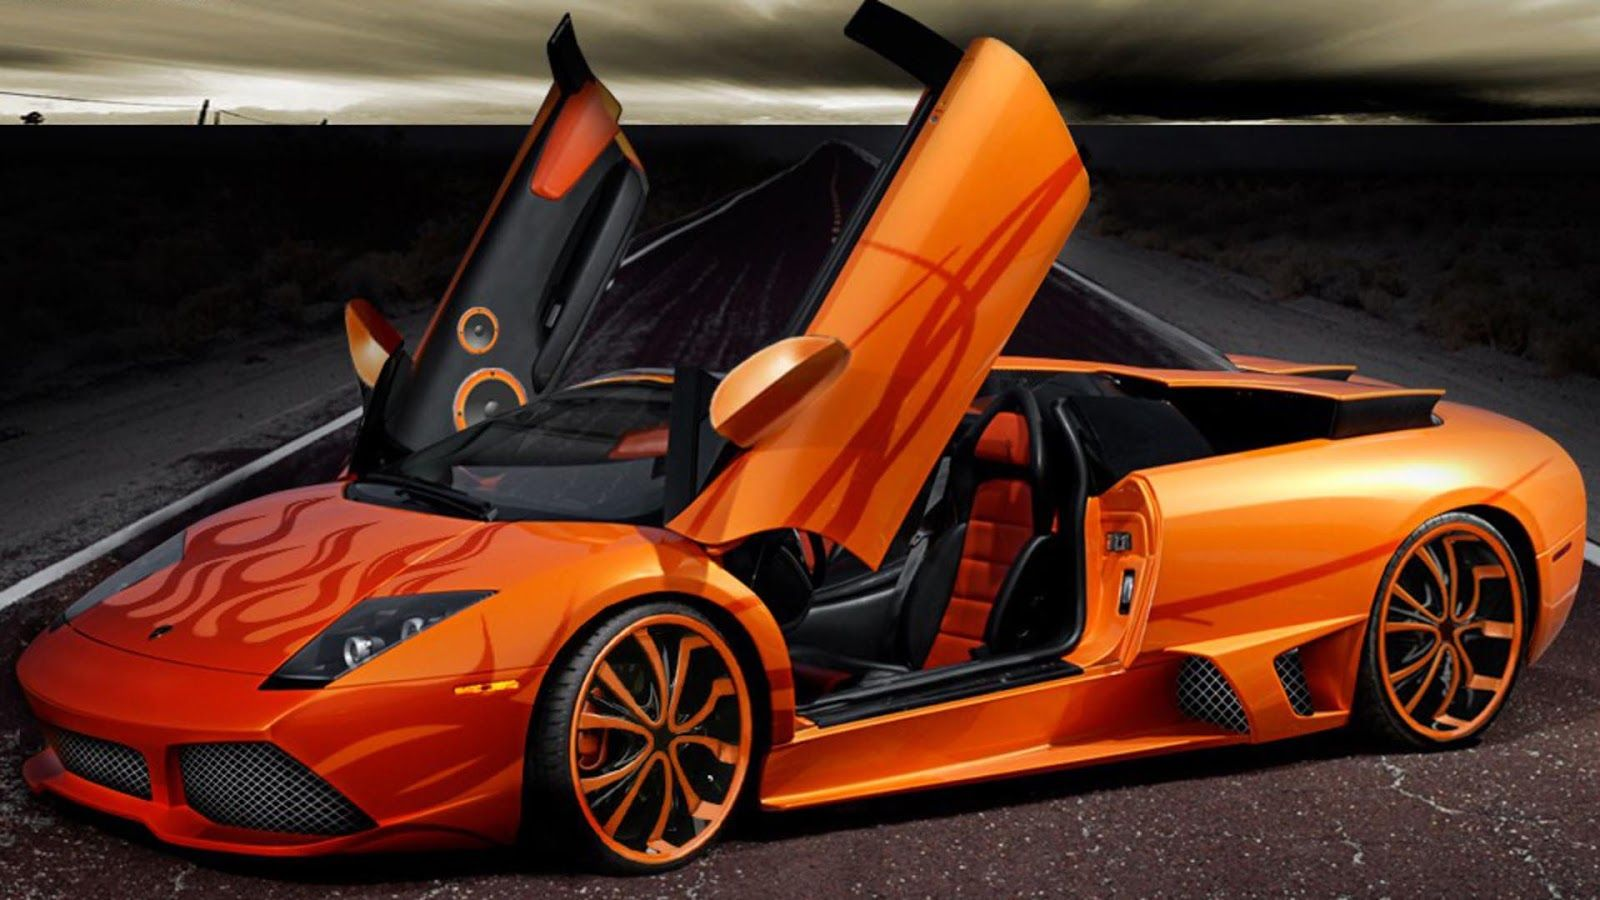 Latest Lamborghini Cars Price List January 2016 Ford Scorpio Wiring Diagram Sportscar Car Automotive